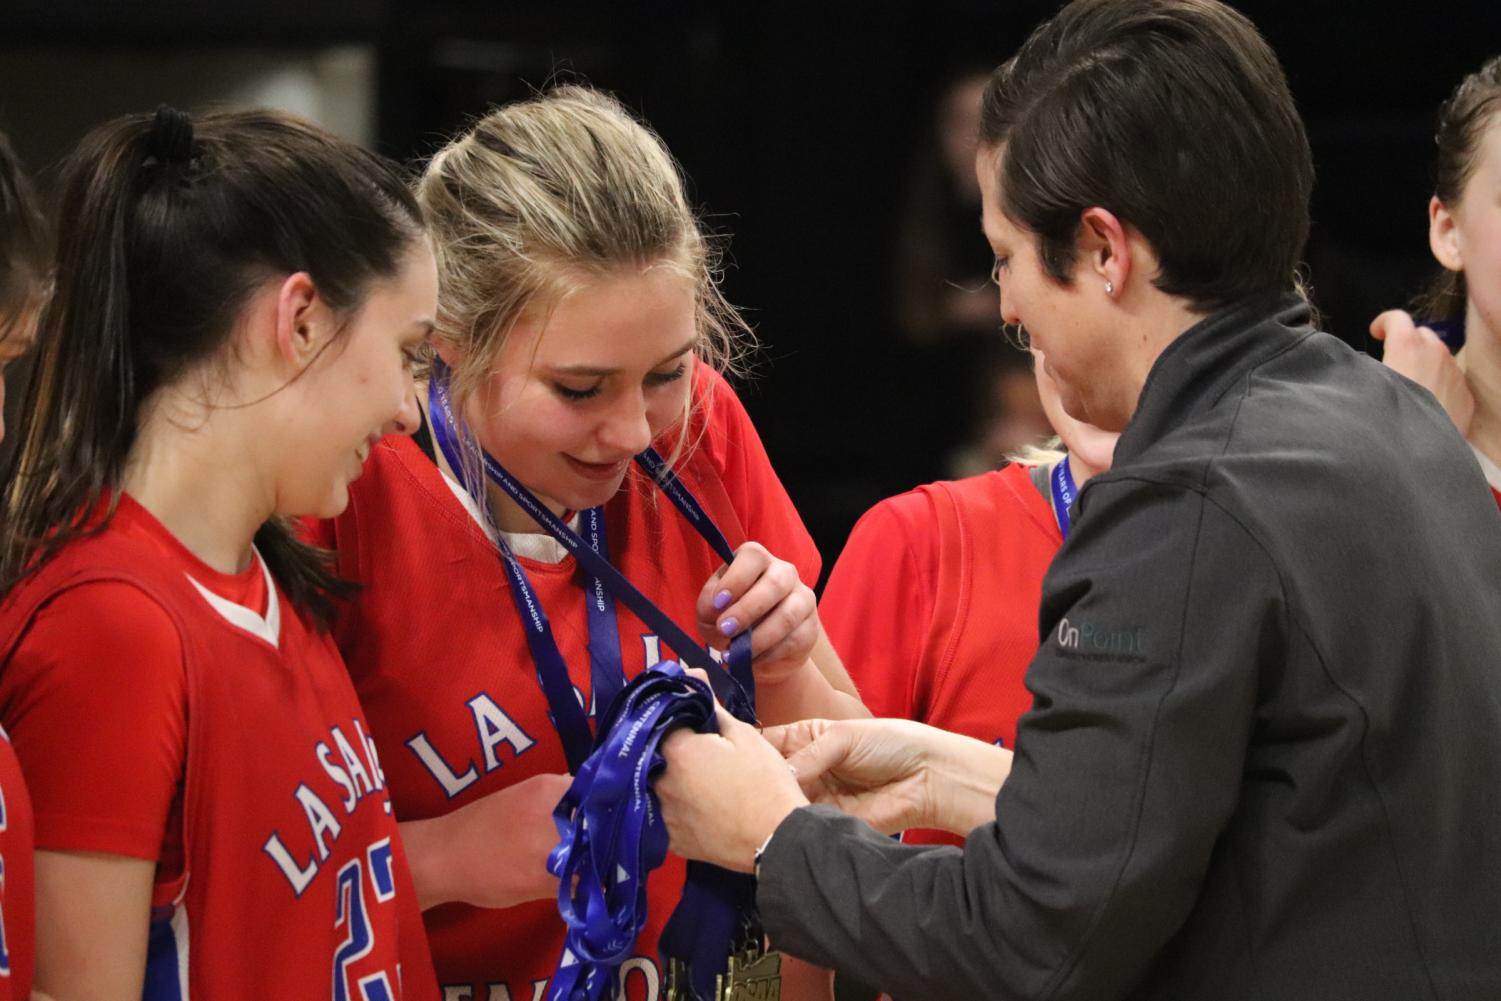 Wedin+gets+her+first+place+medal+on+top+of+her+First+Team+All-Tournament+medal+that+she+was+awarded+just+moments+before+alongside+Miura.